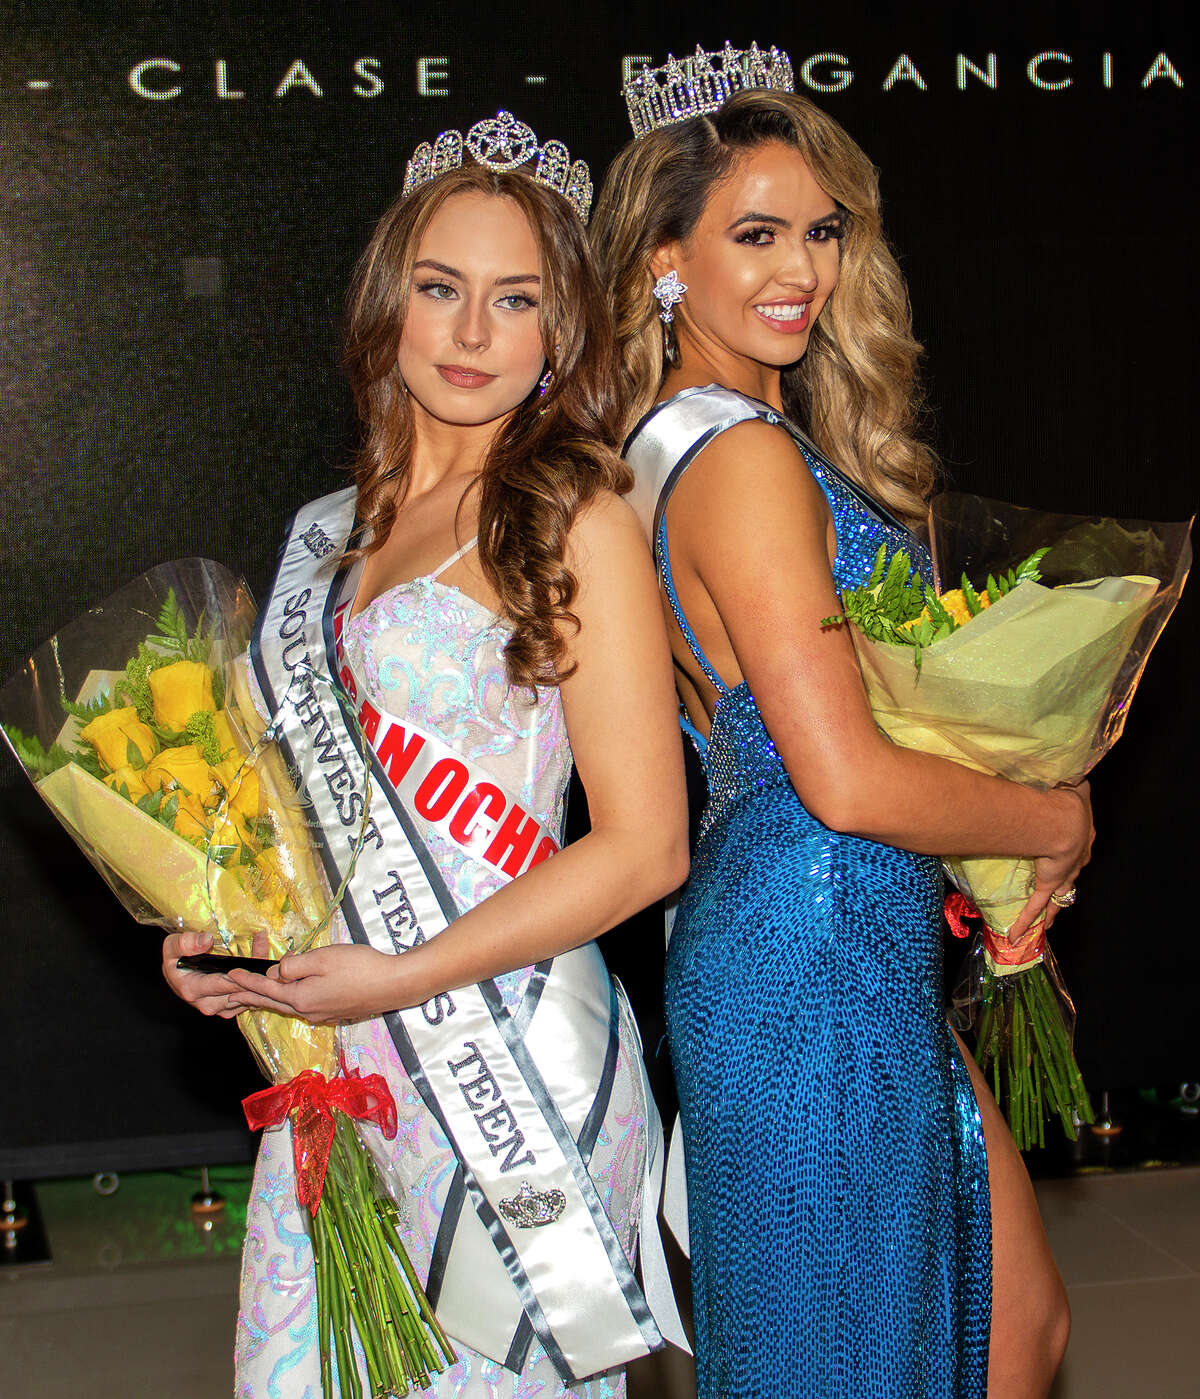 Megan Ochoa and Celissa Pena will advance to the state level, representing Southwest Texas at the Miss Texas USA and Miss Texas Teen USA competitions